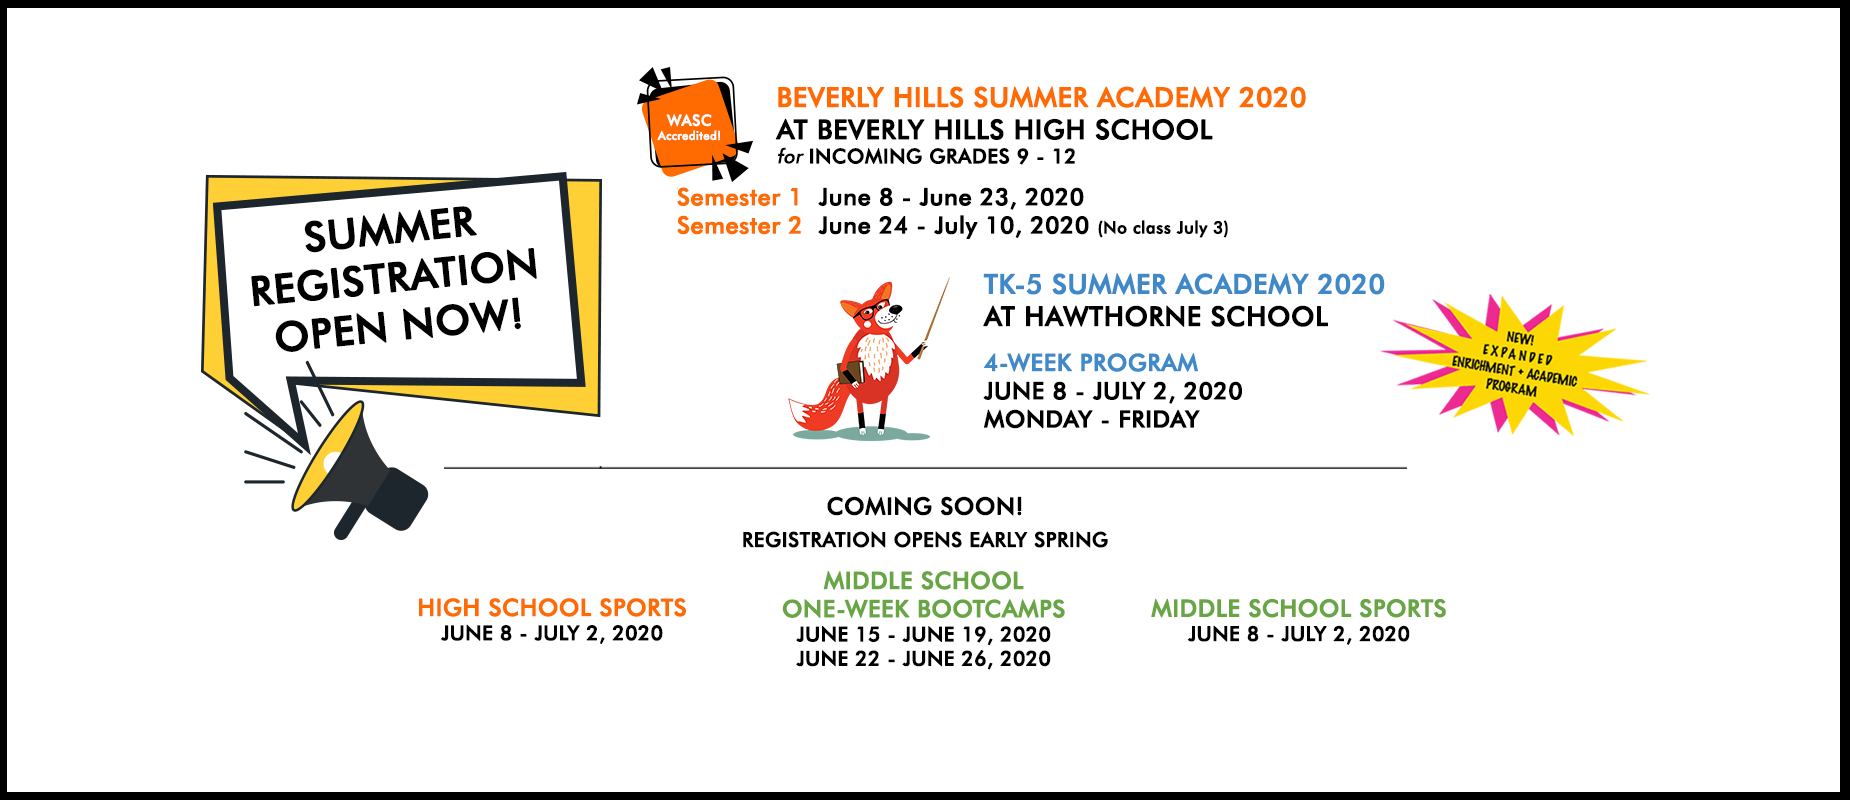 summer registration now open visit summer academy tab to register